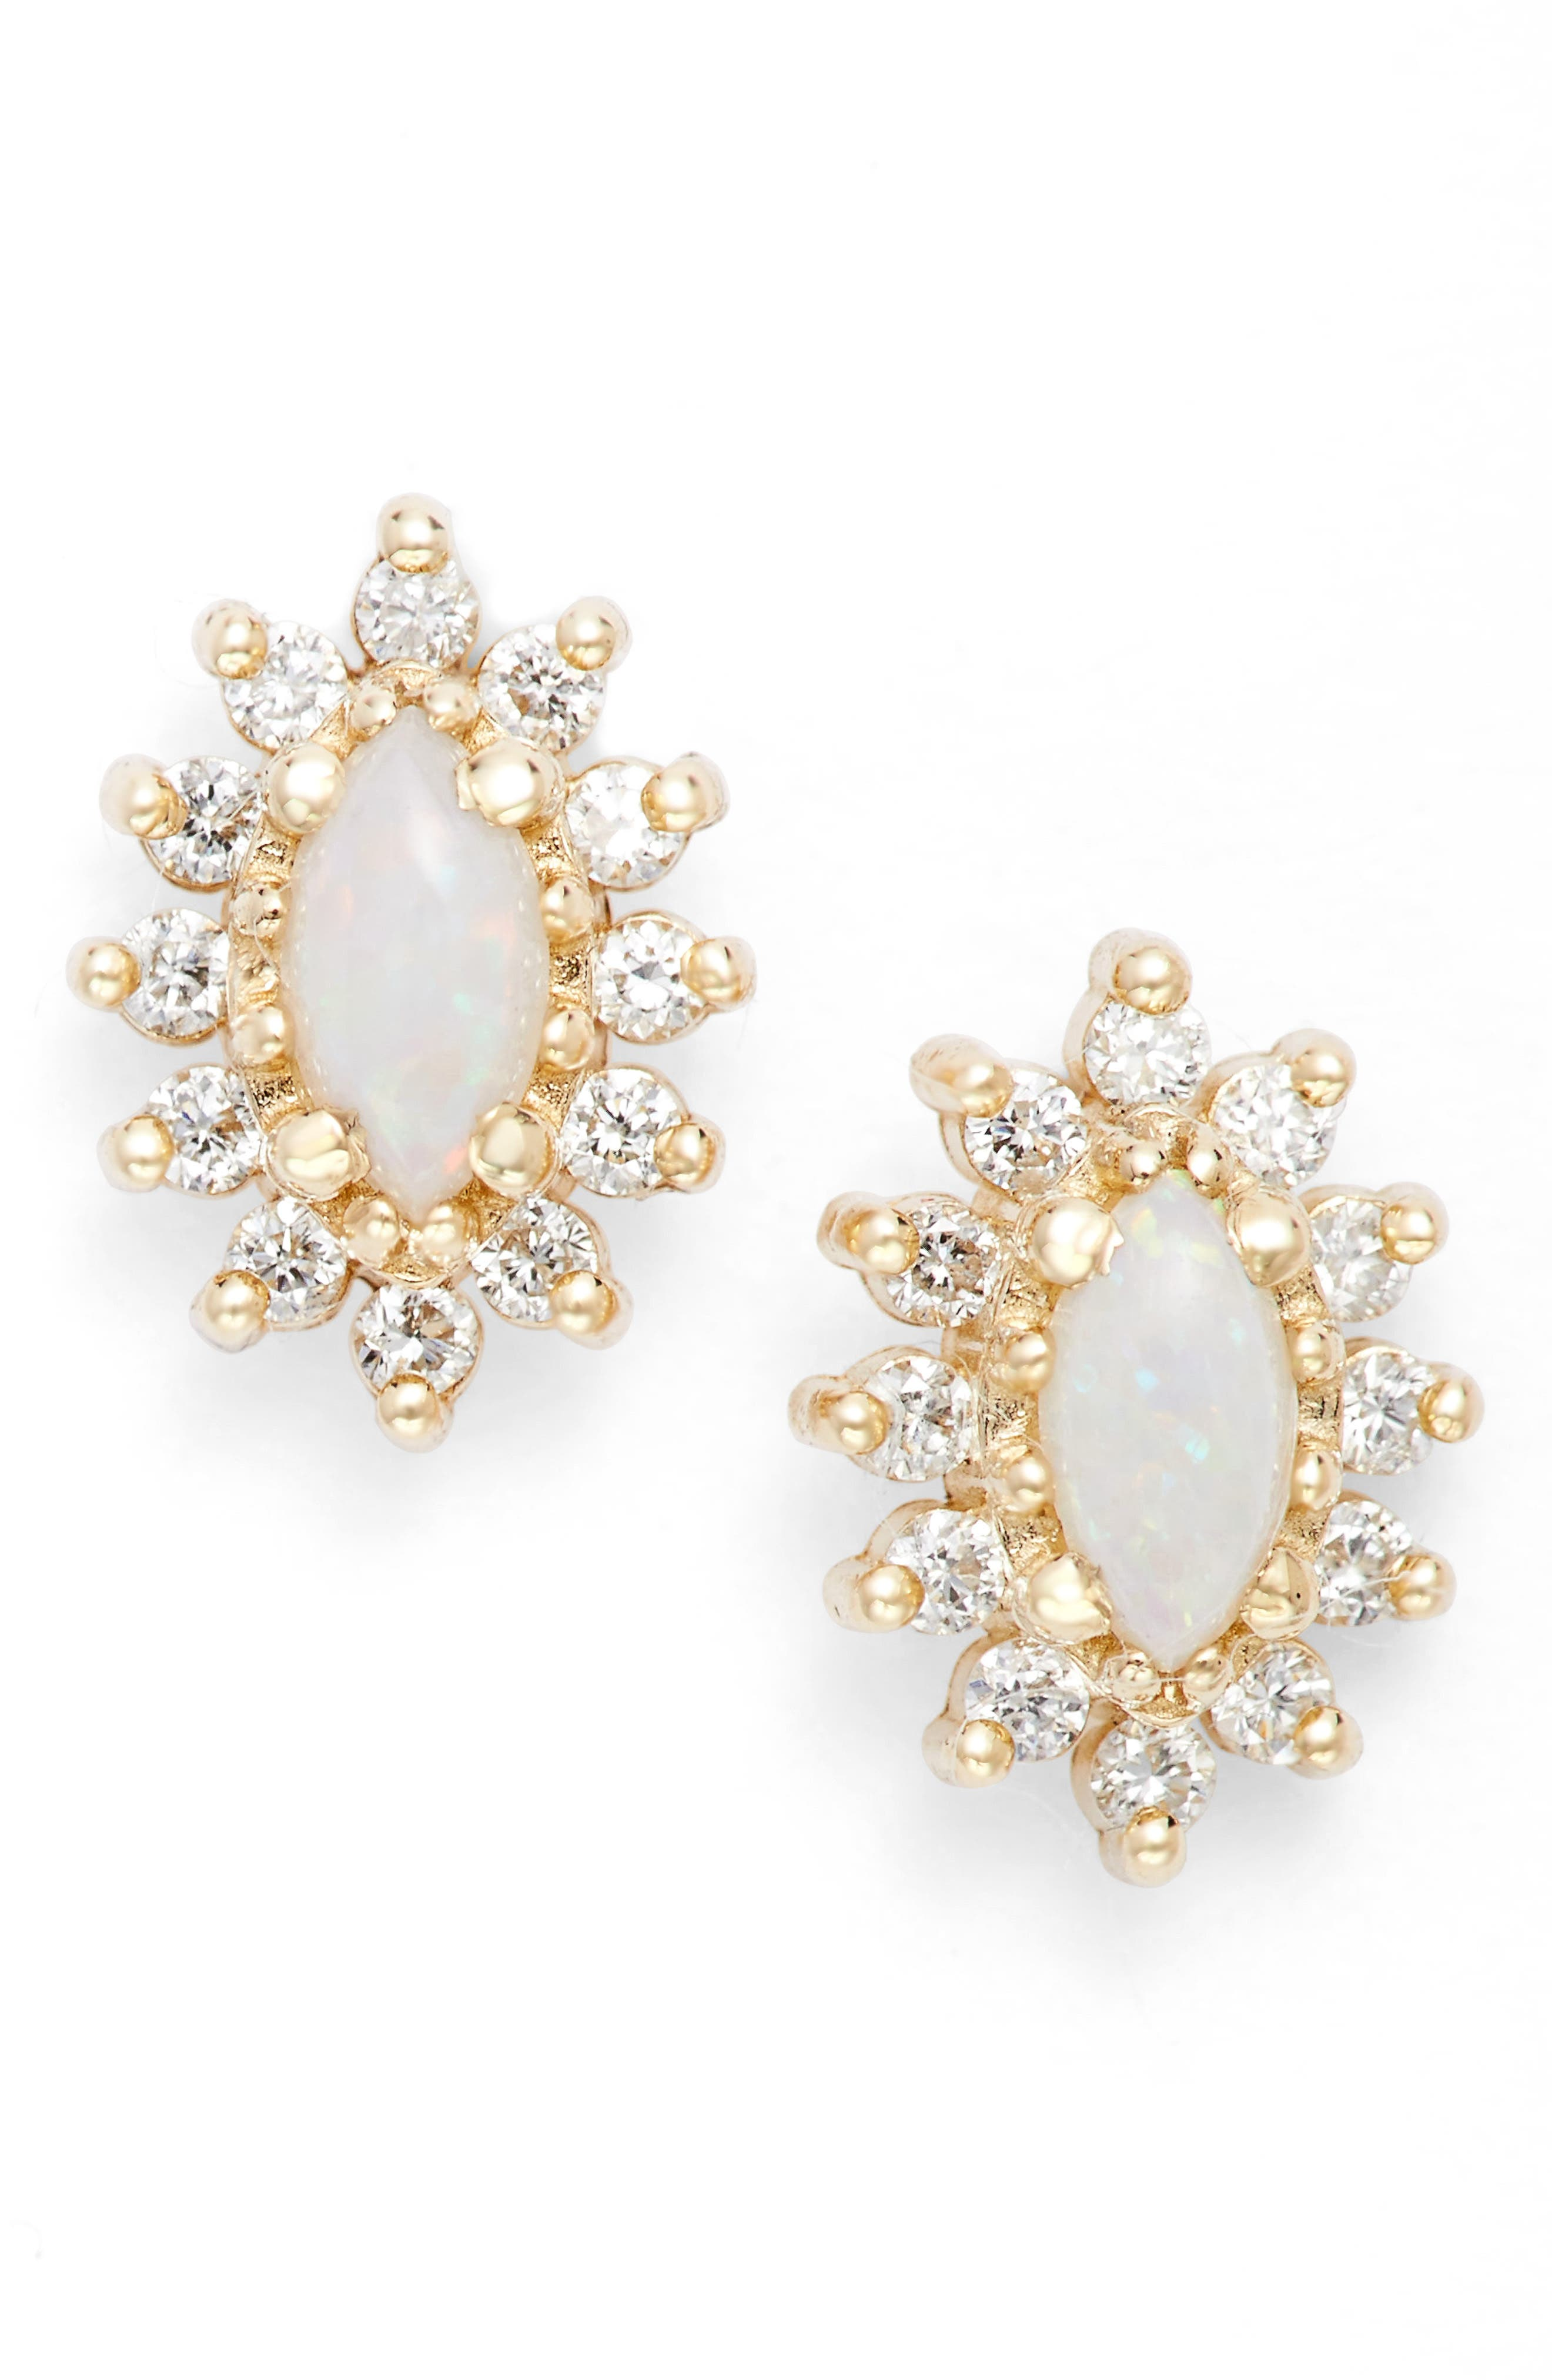 Zoe Chicco Diamond & Opal Cluster Stud Earrings (Nordstrom Exclusive)